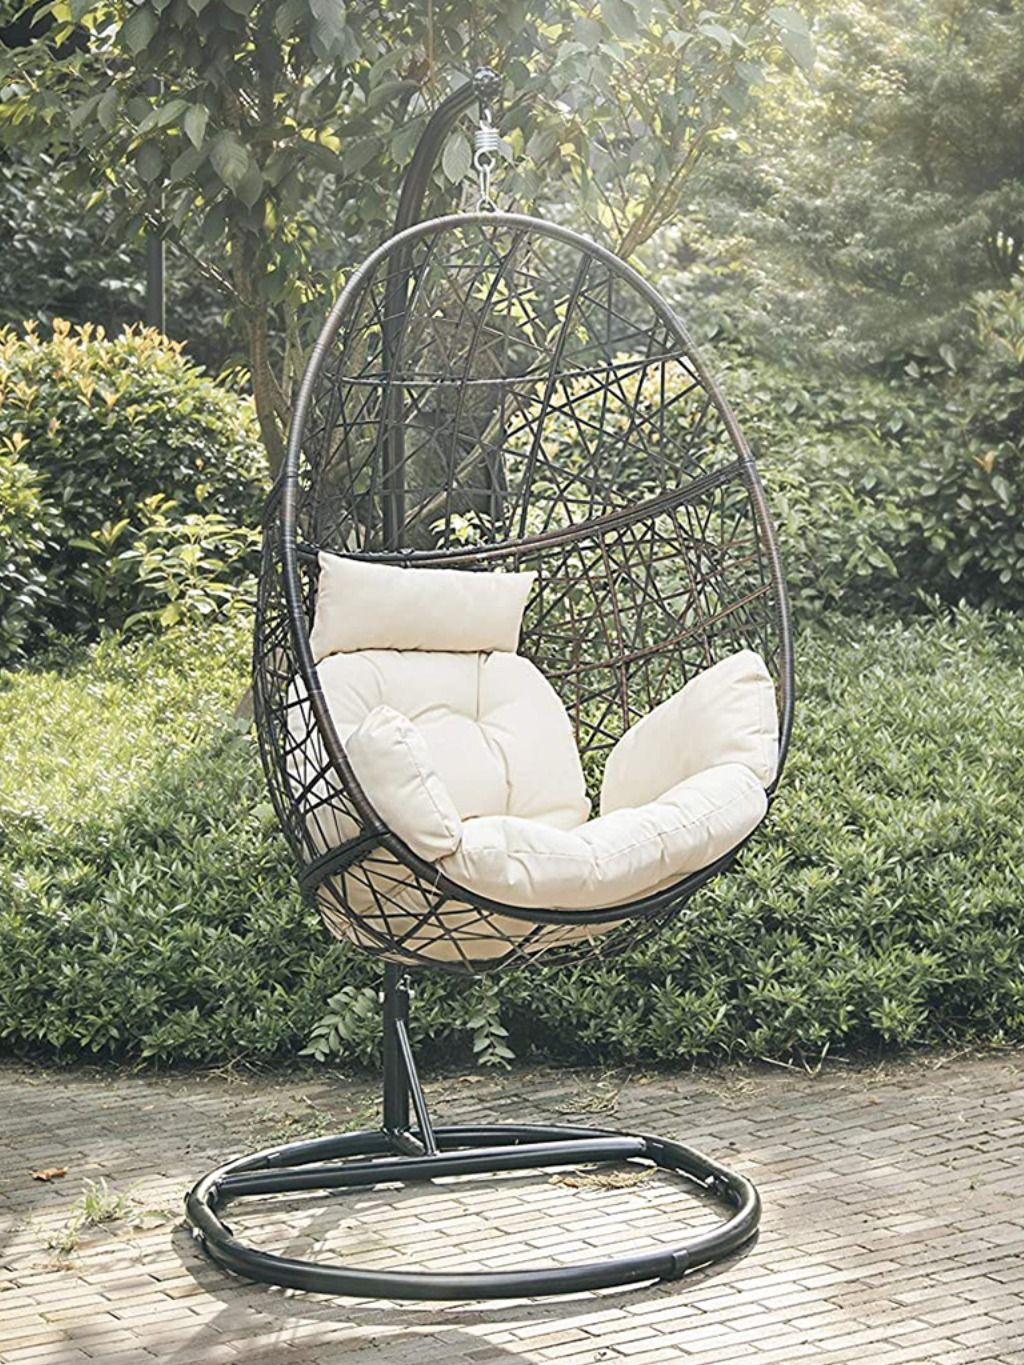 Hanging Wicker Egg Chair With Stand In 2020 Hanging Chair Outdoor Garden Furniture Chairs Hanging Swing Chair